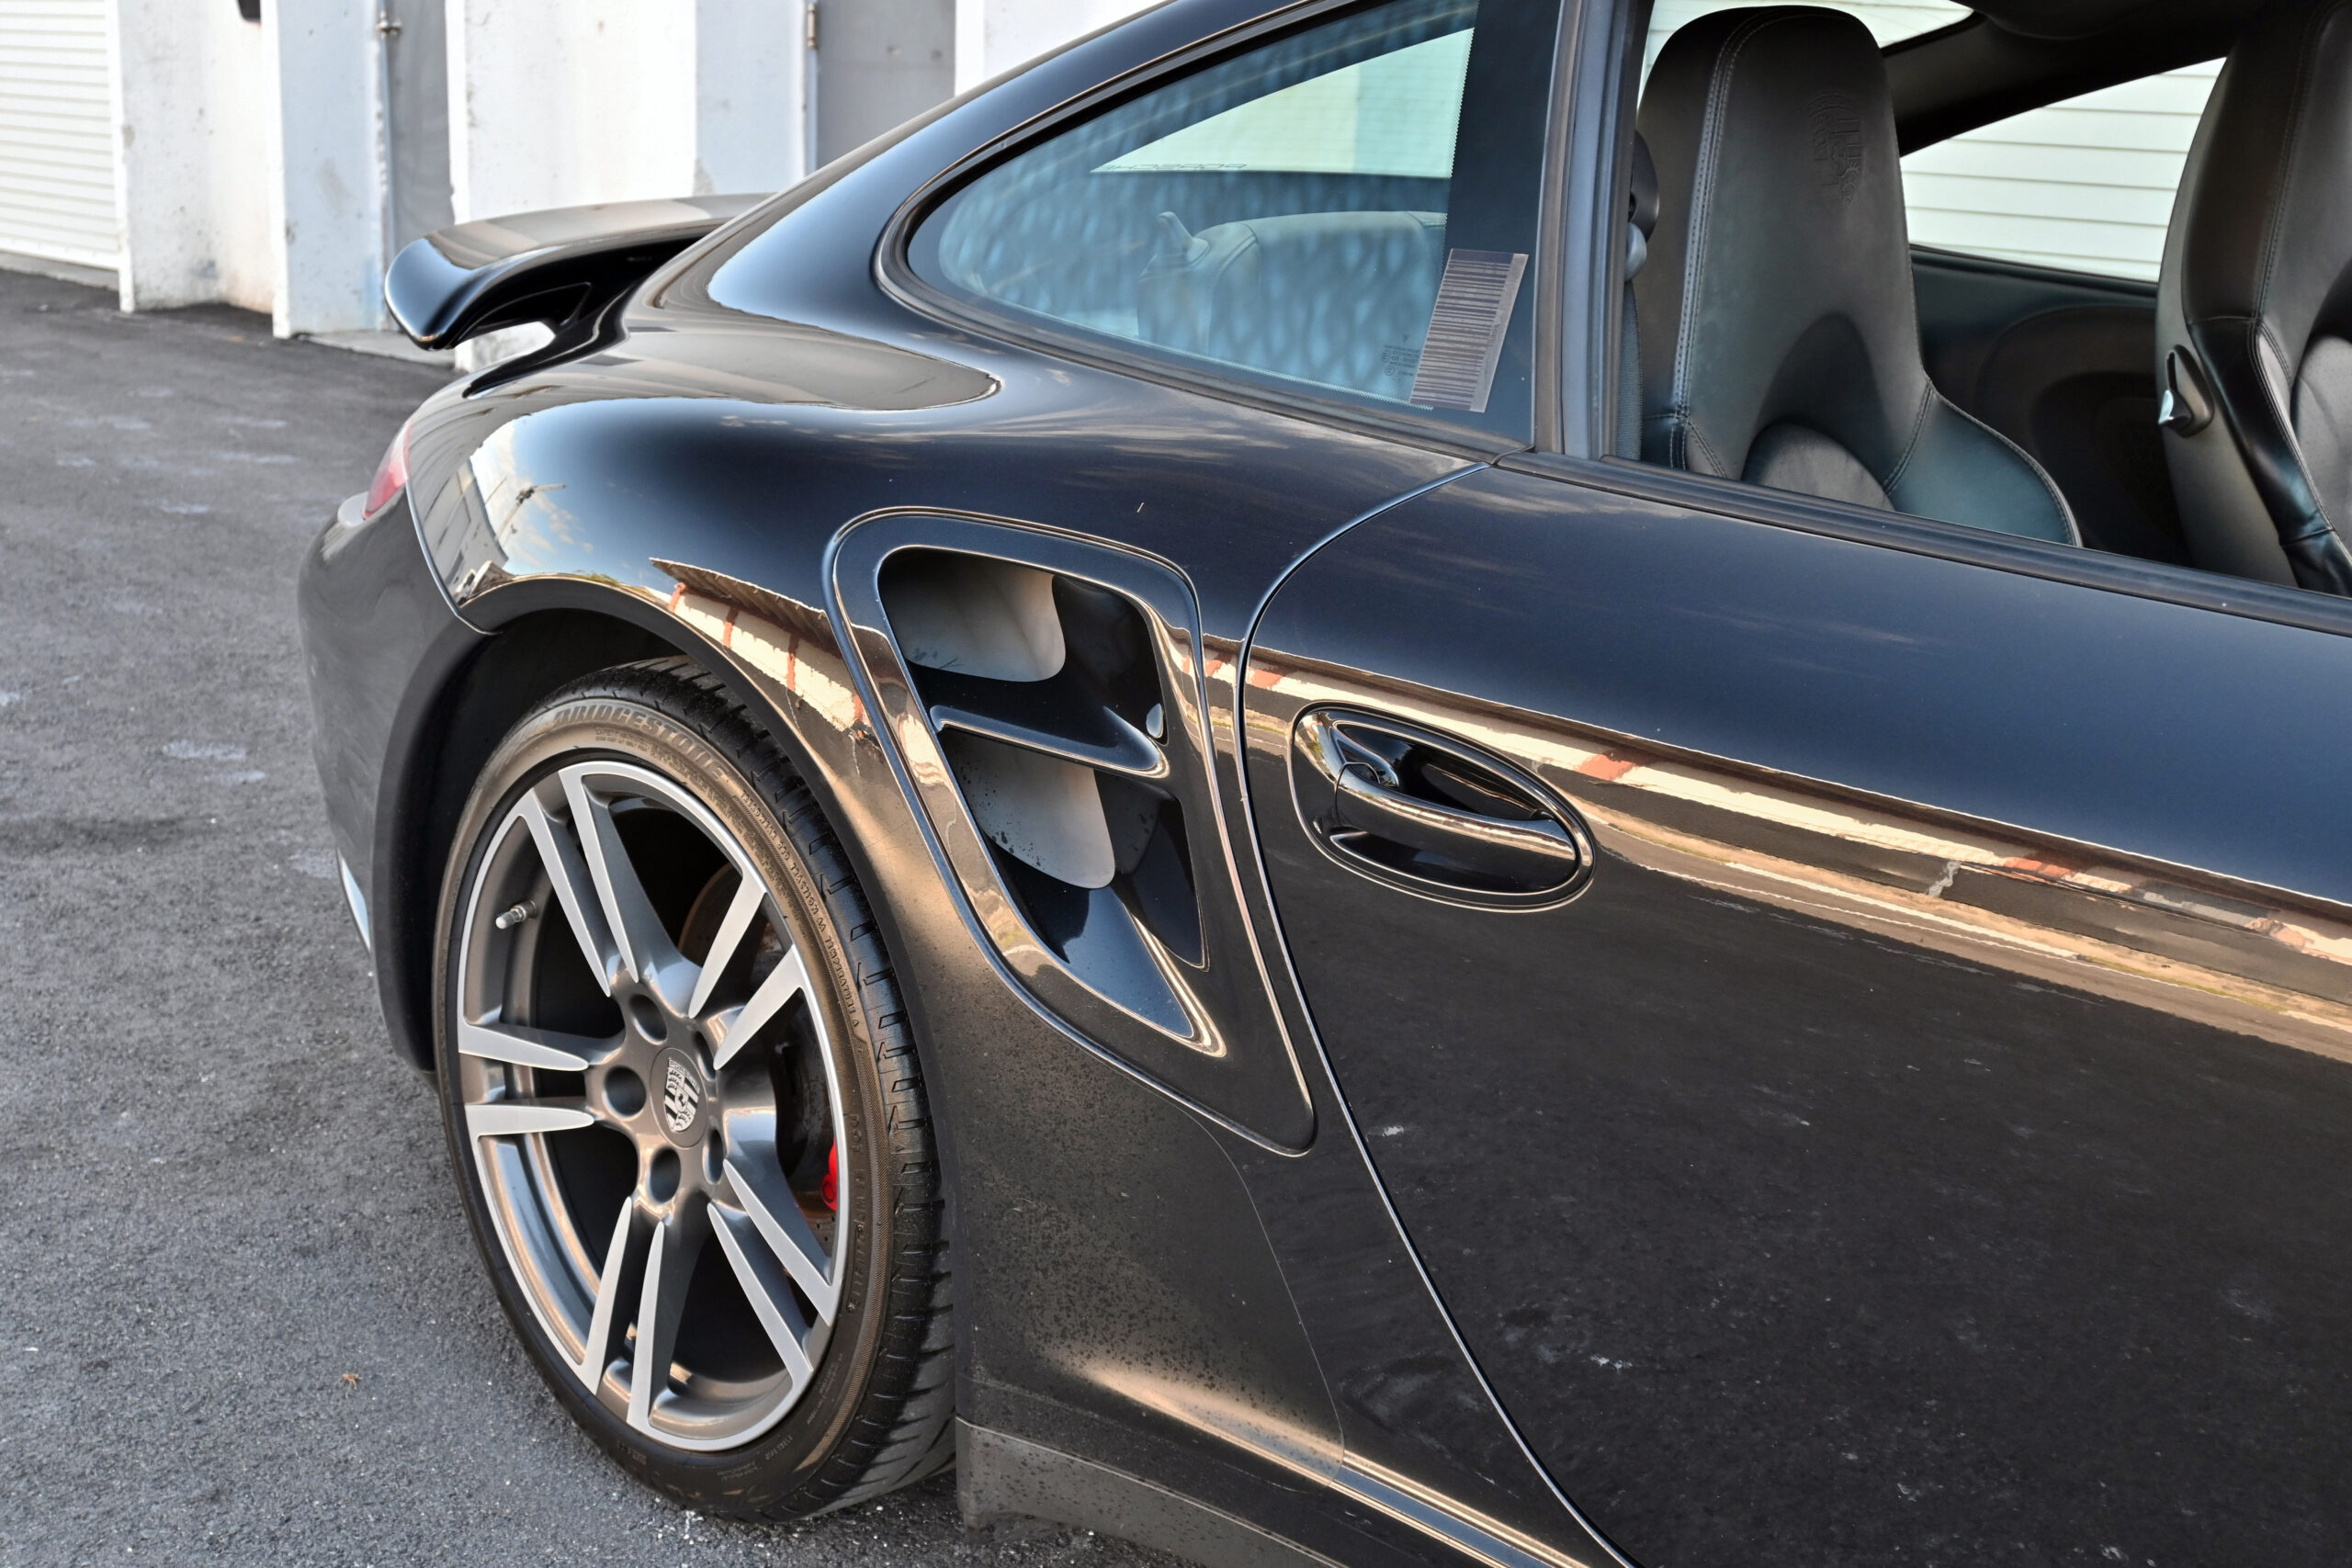 2008 Porsche 997 Turbo, 6-speed manual, Sports Seats, fully serviced and documented, Fabspeed exhaust, Pinned Coolant Lines, Fresh service